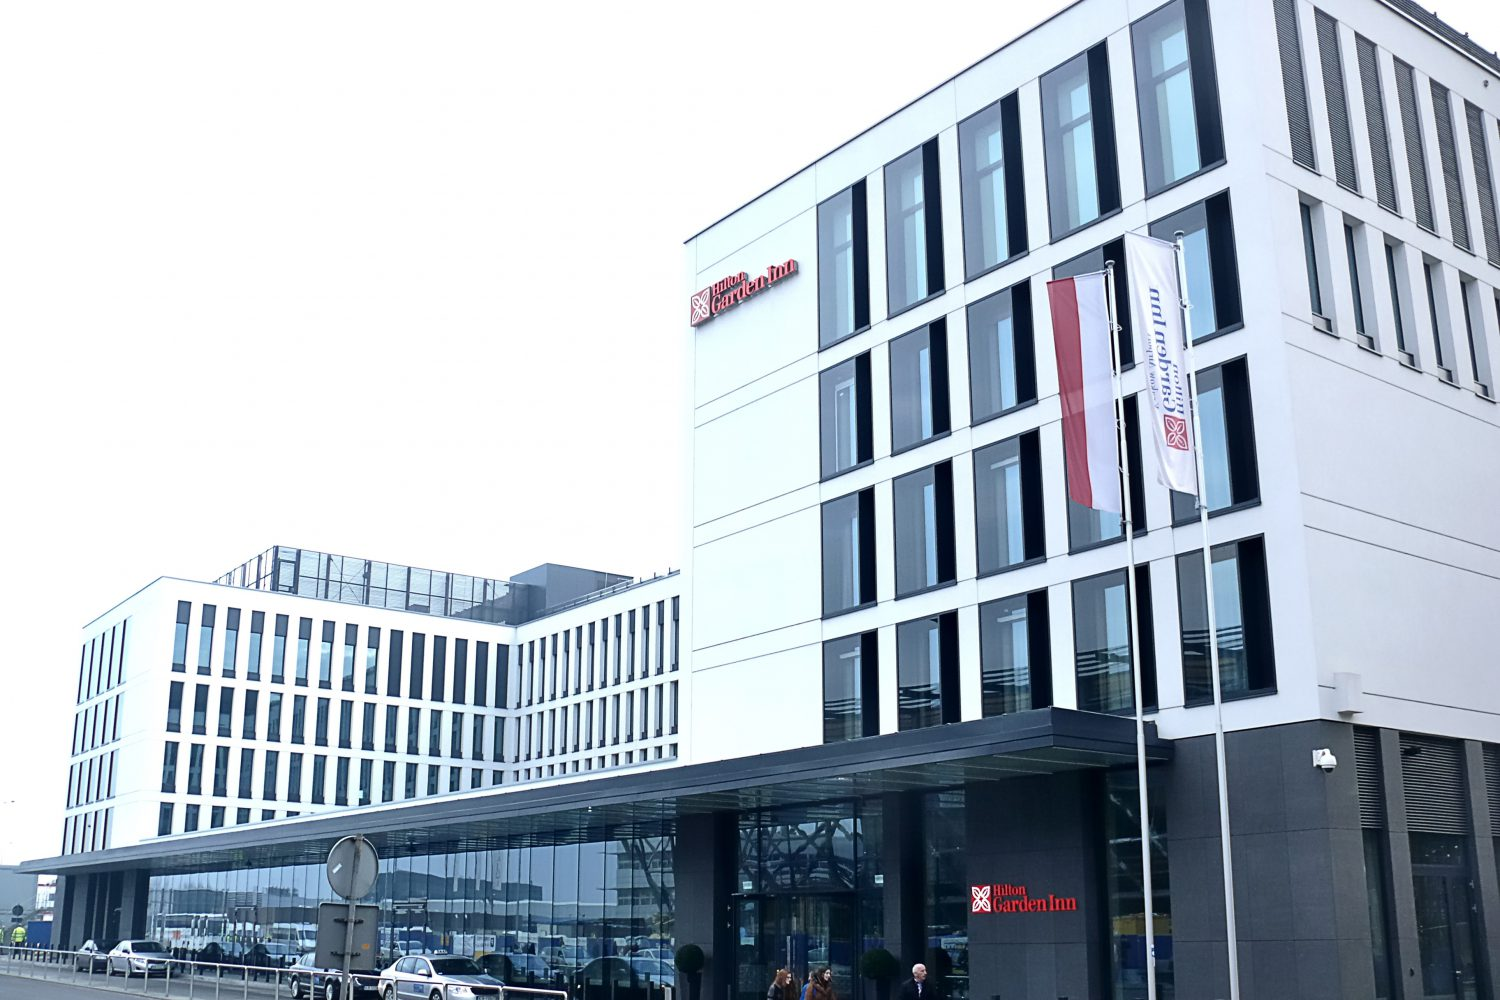 Hilton Hotel in Cracow-Balice